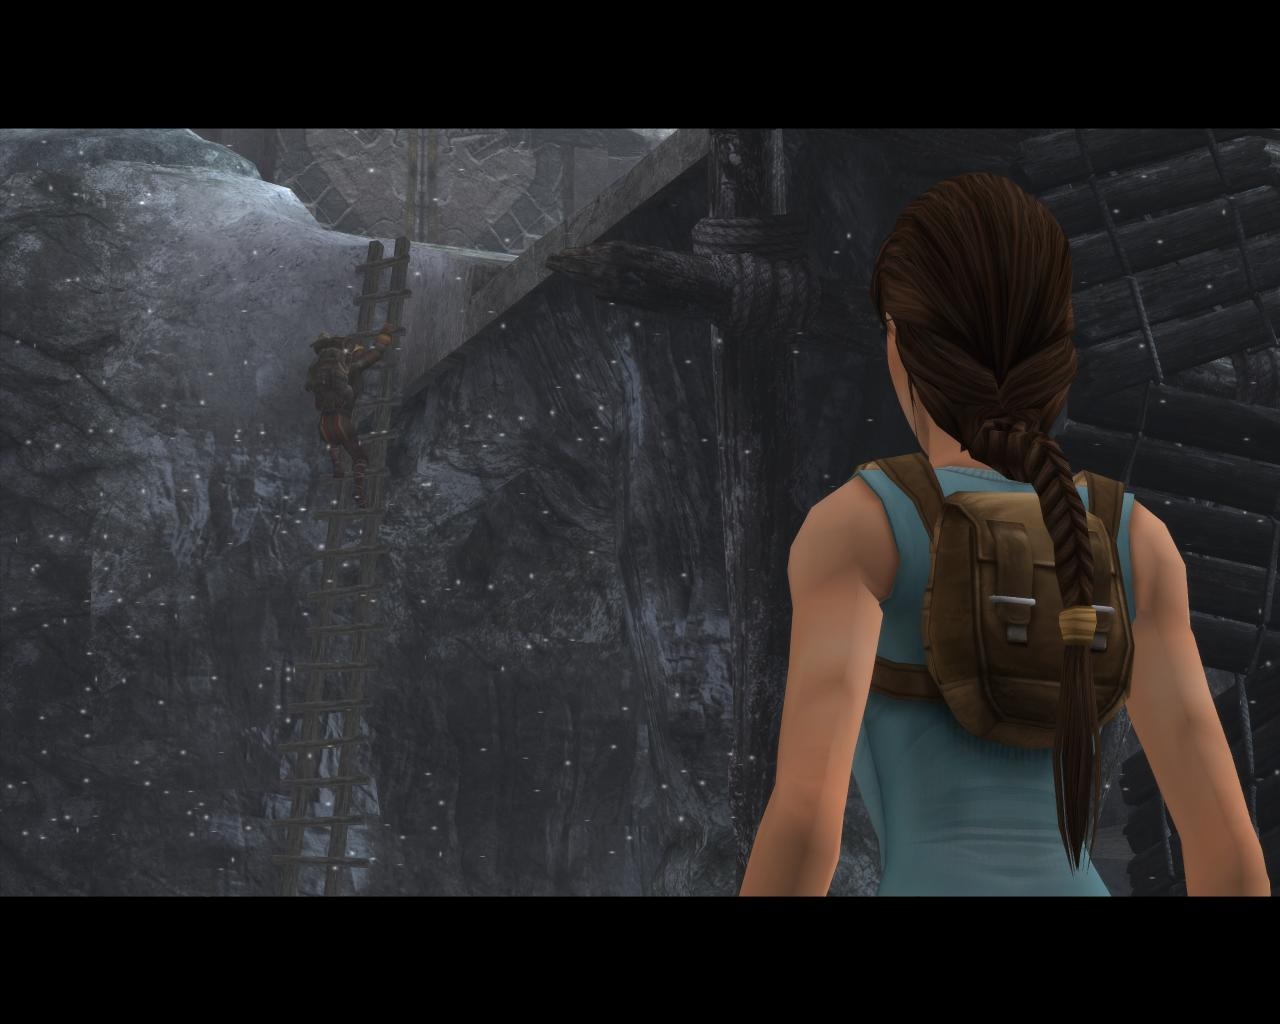 Tomb raider anniversary nute patch adult thumbs